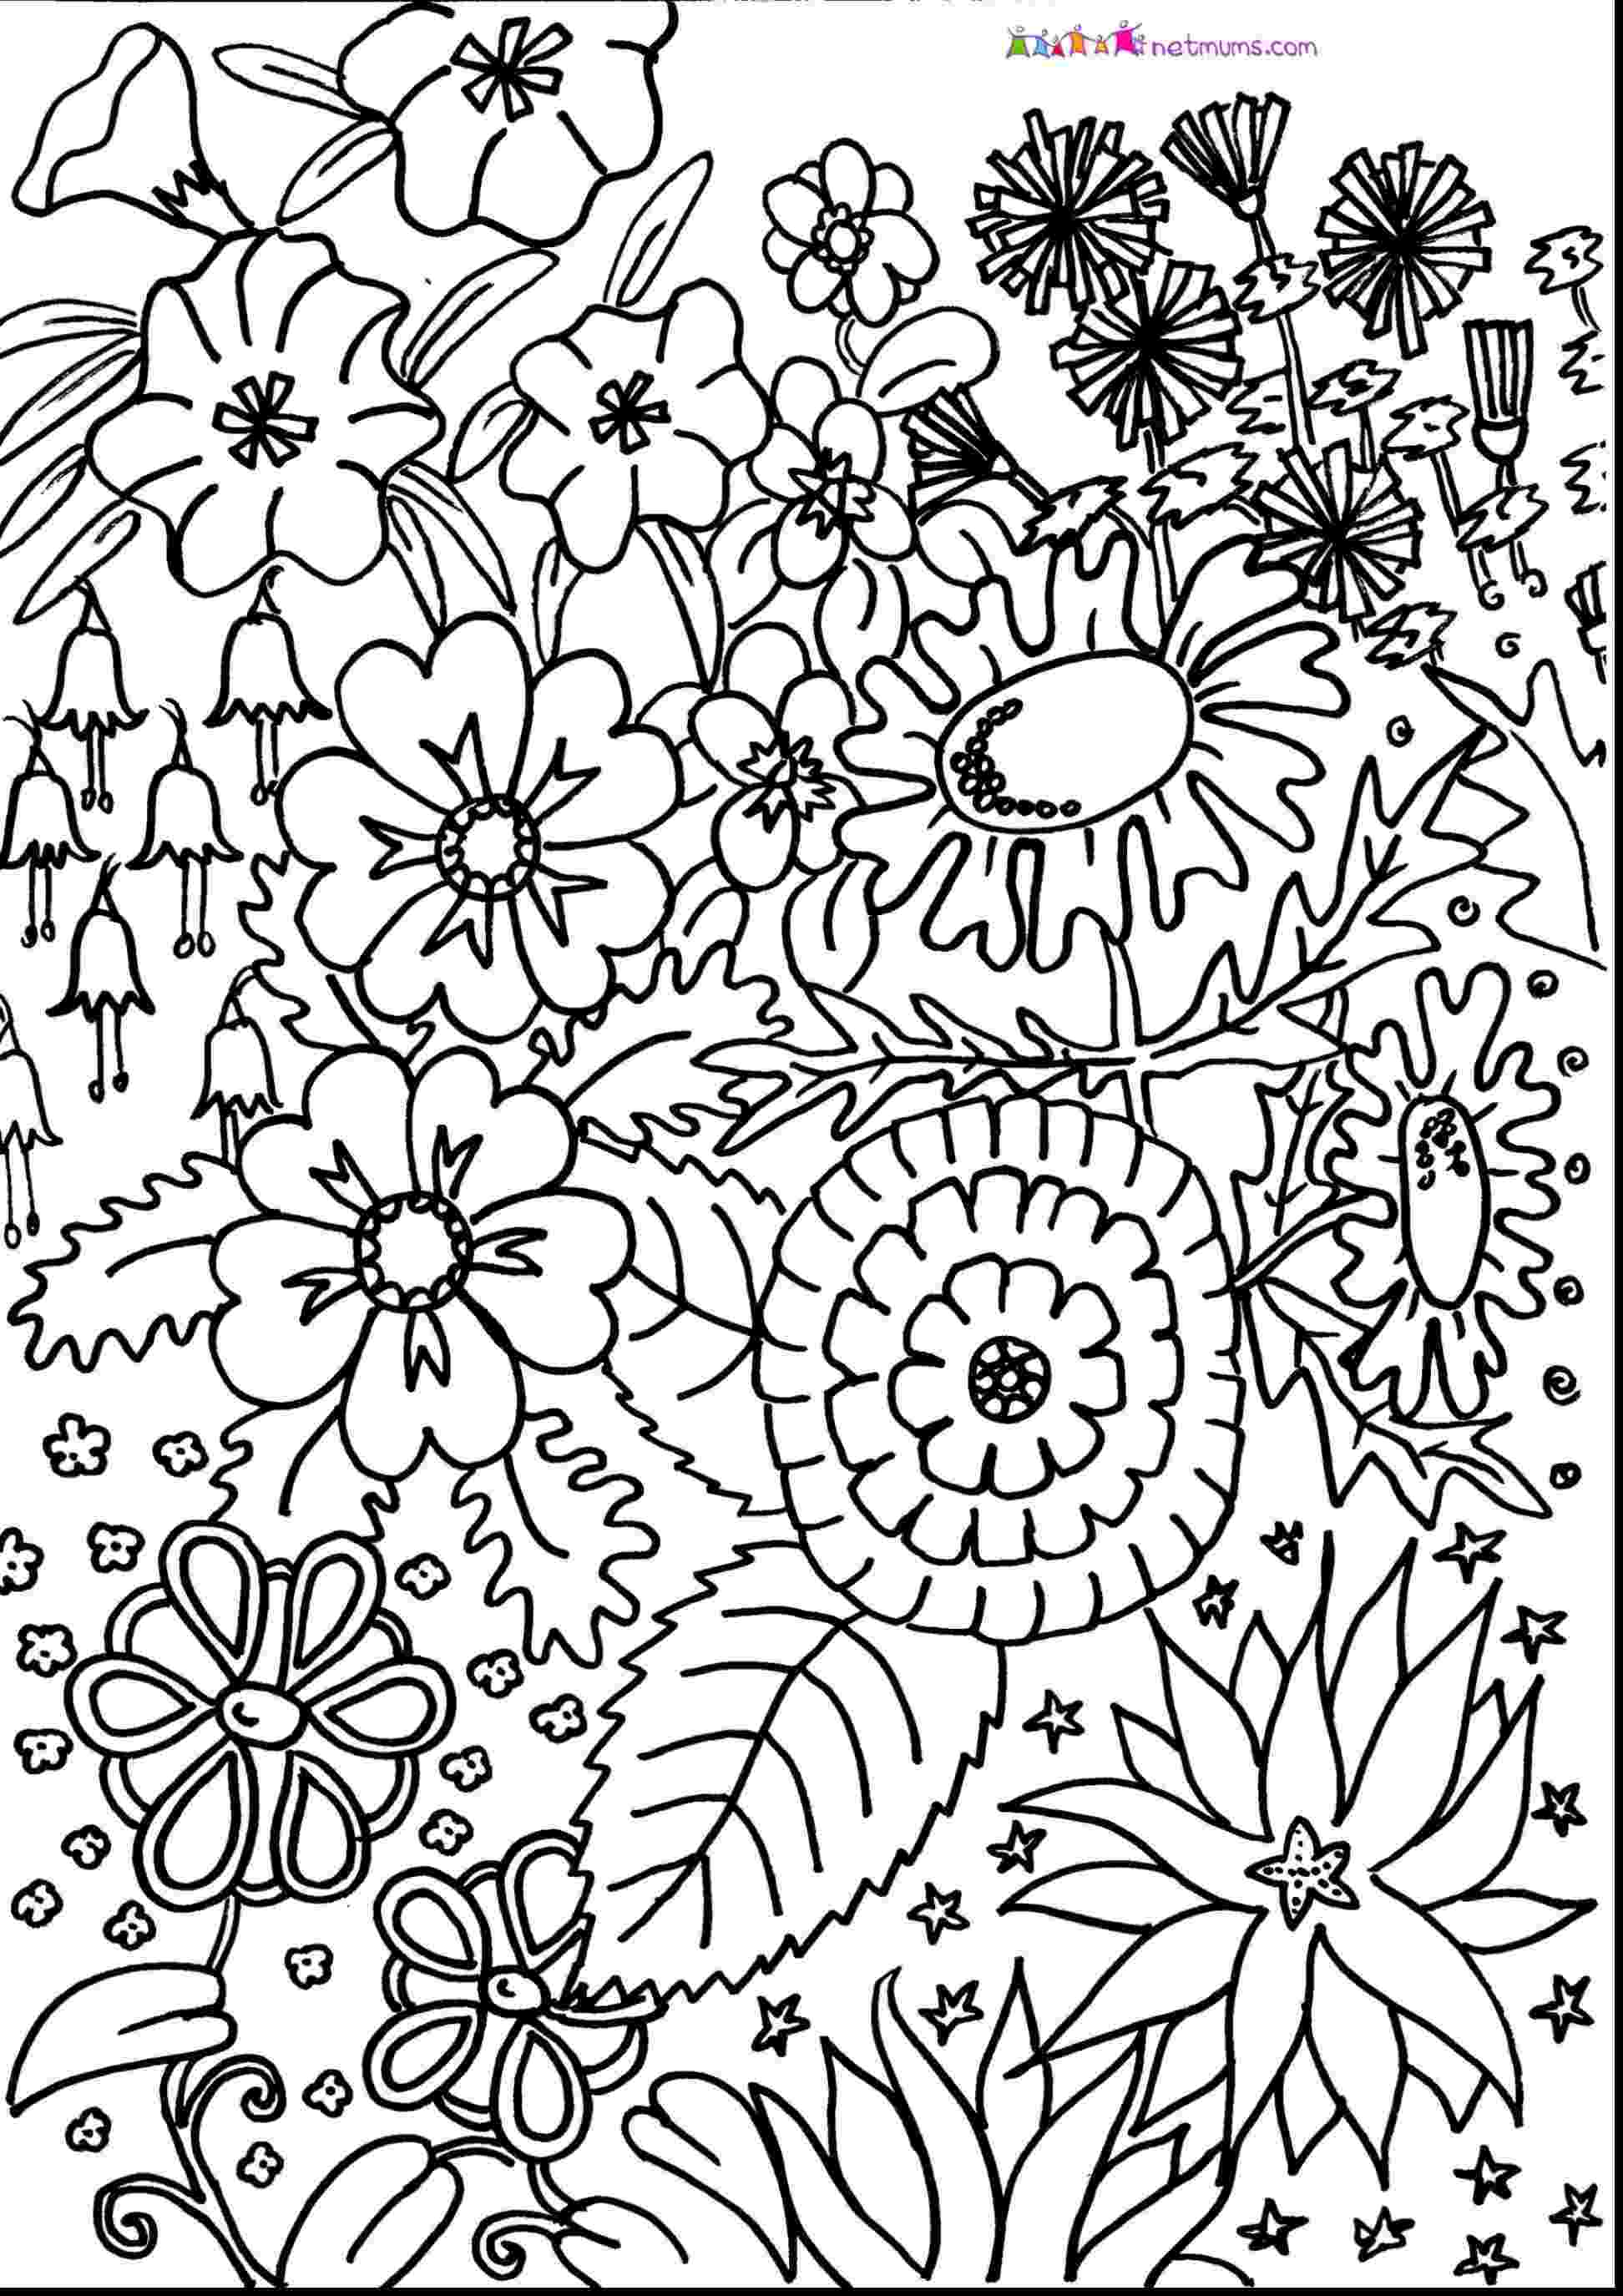 flower coloring patterns free coloring pages round up for grown ups rachel teodoro coloring patterns flower